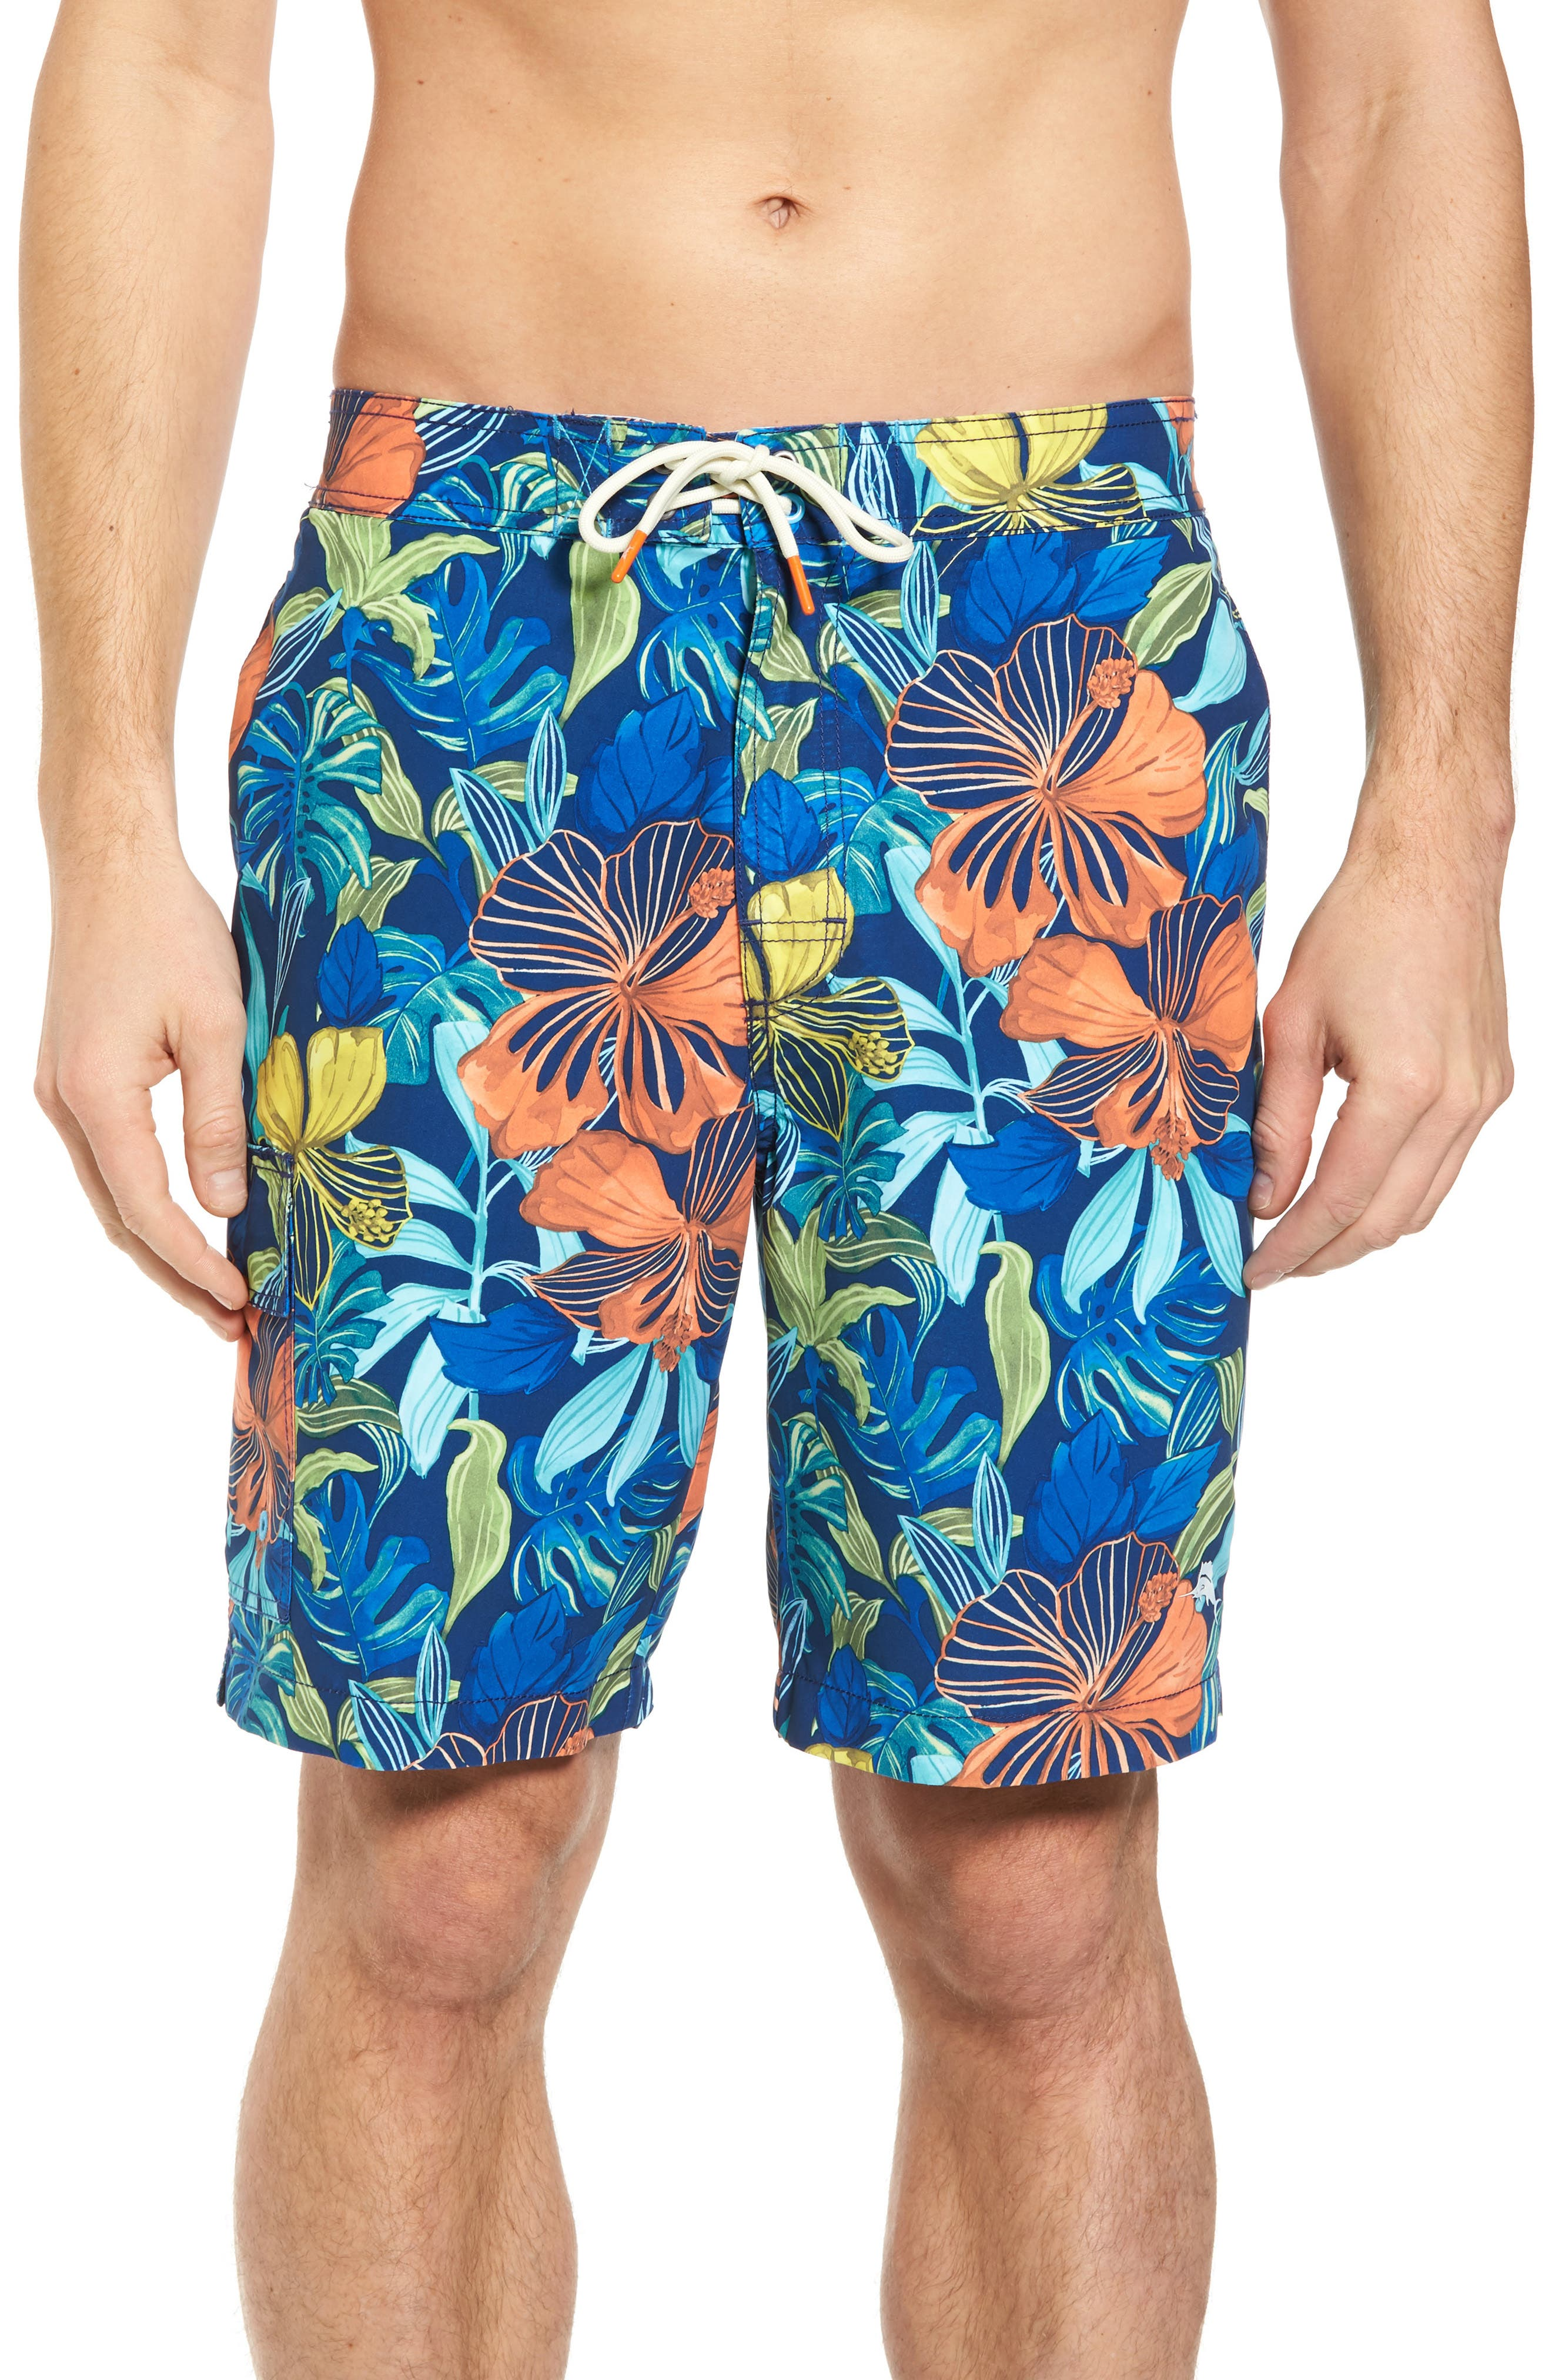 Alternate Image 1 Selected - Tommy Bahama Baja Hibiscus Beach Swim Trunks